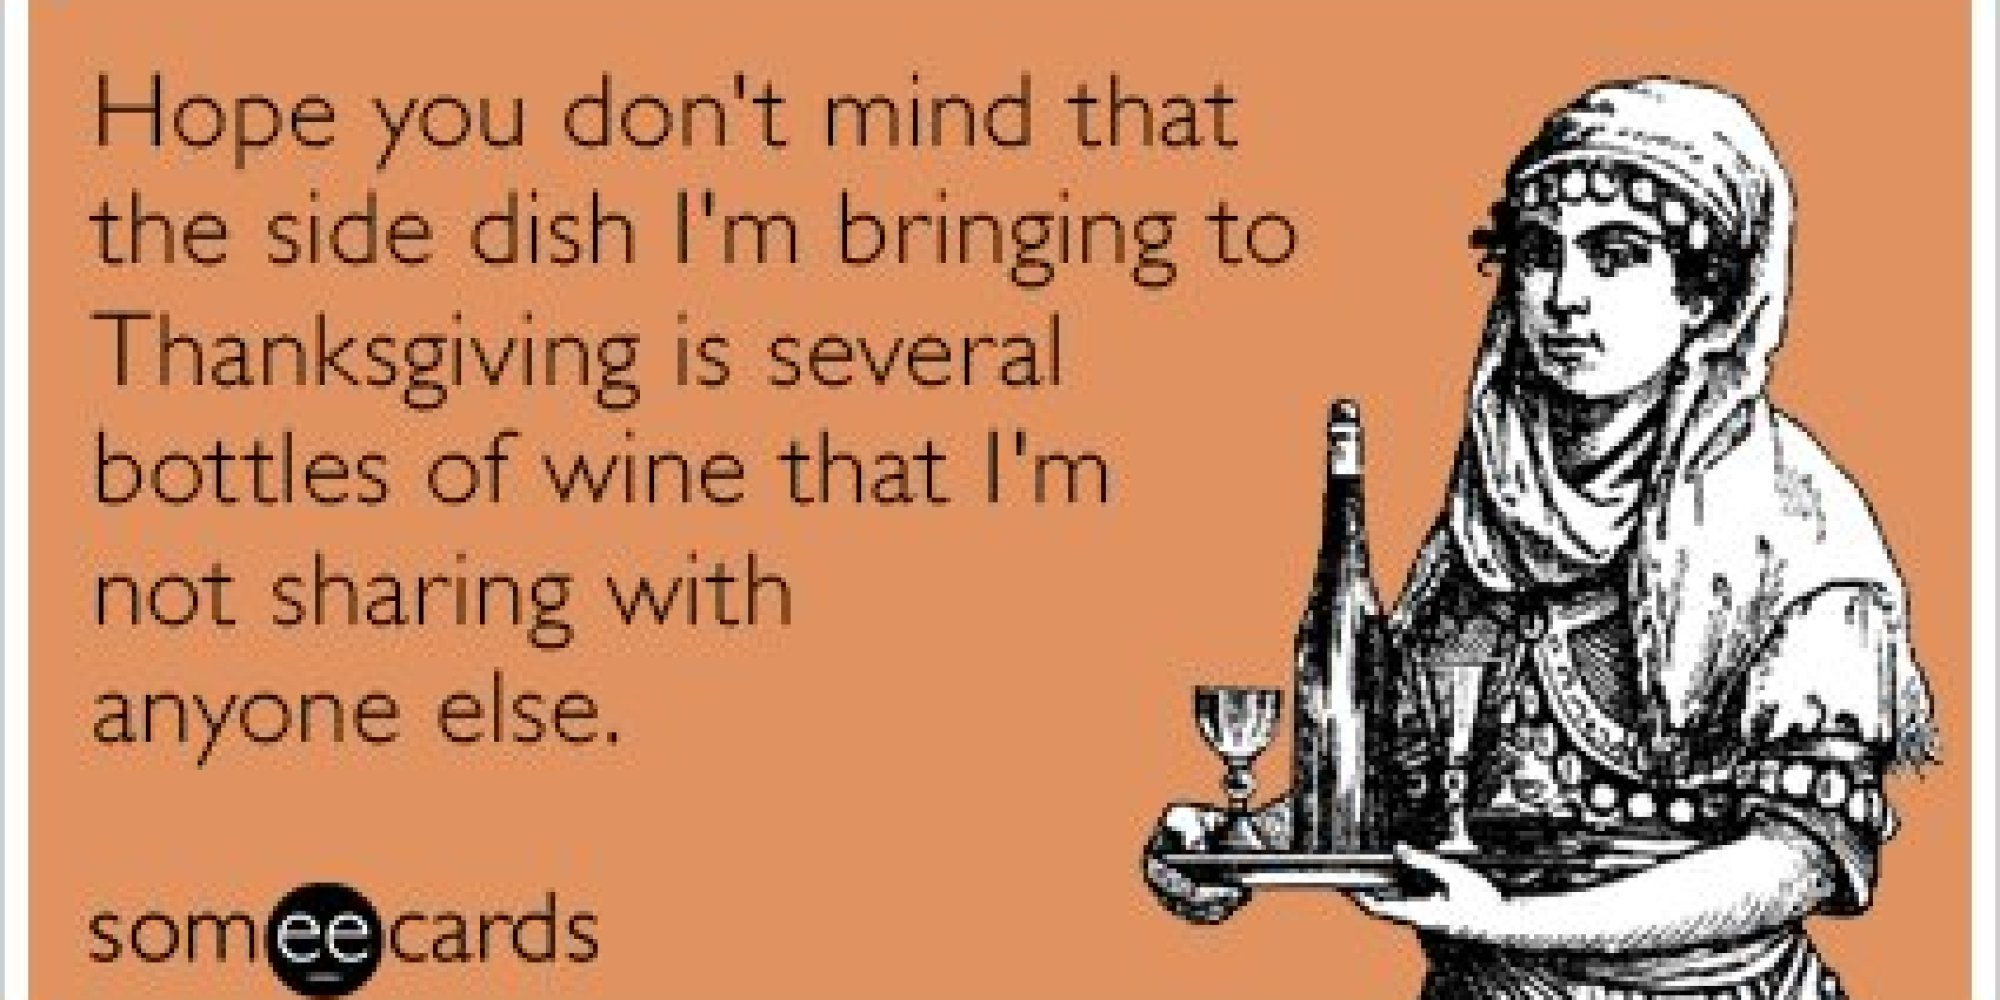 ecards drinking wine - photo #11